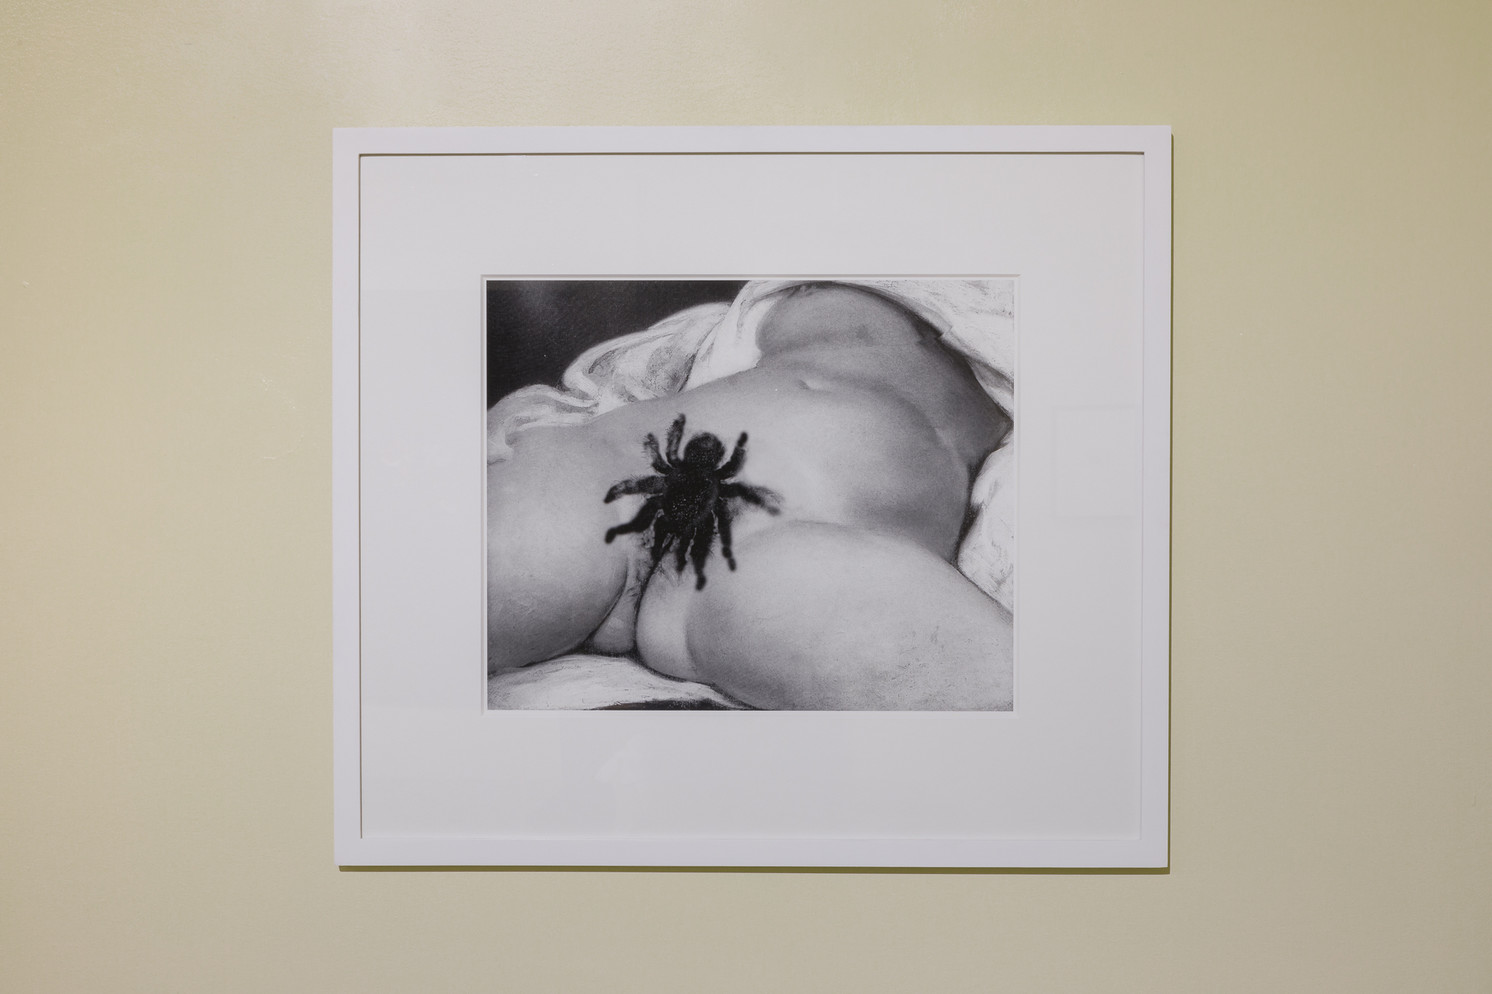 Rosemarie Trockel, Replace Me, 2009. Black and white digital print. Courtesy of the artist and Sprüth Magers.